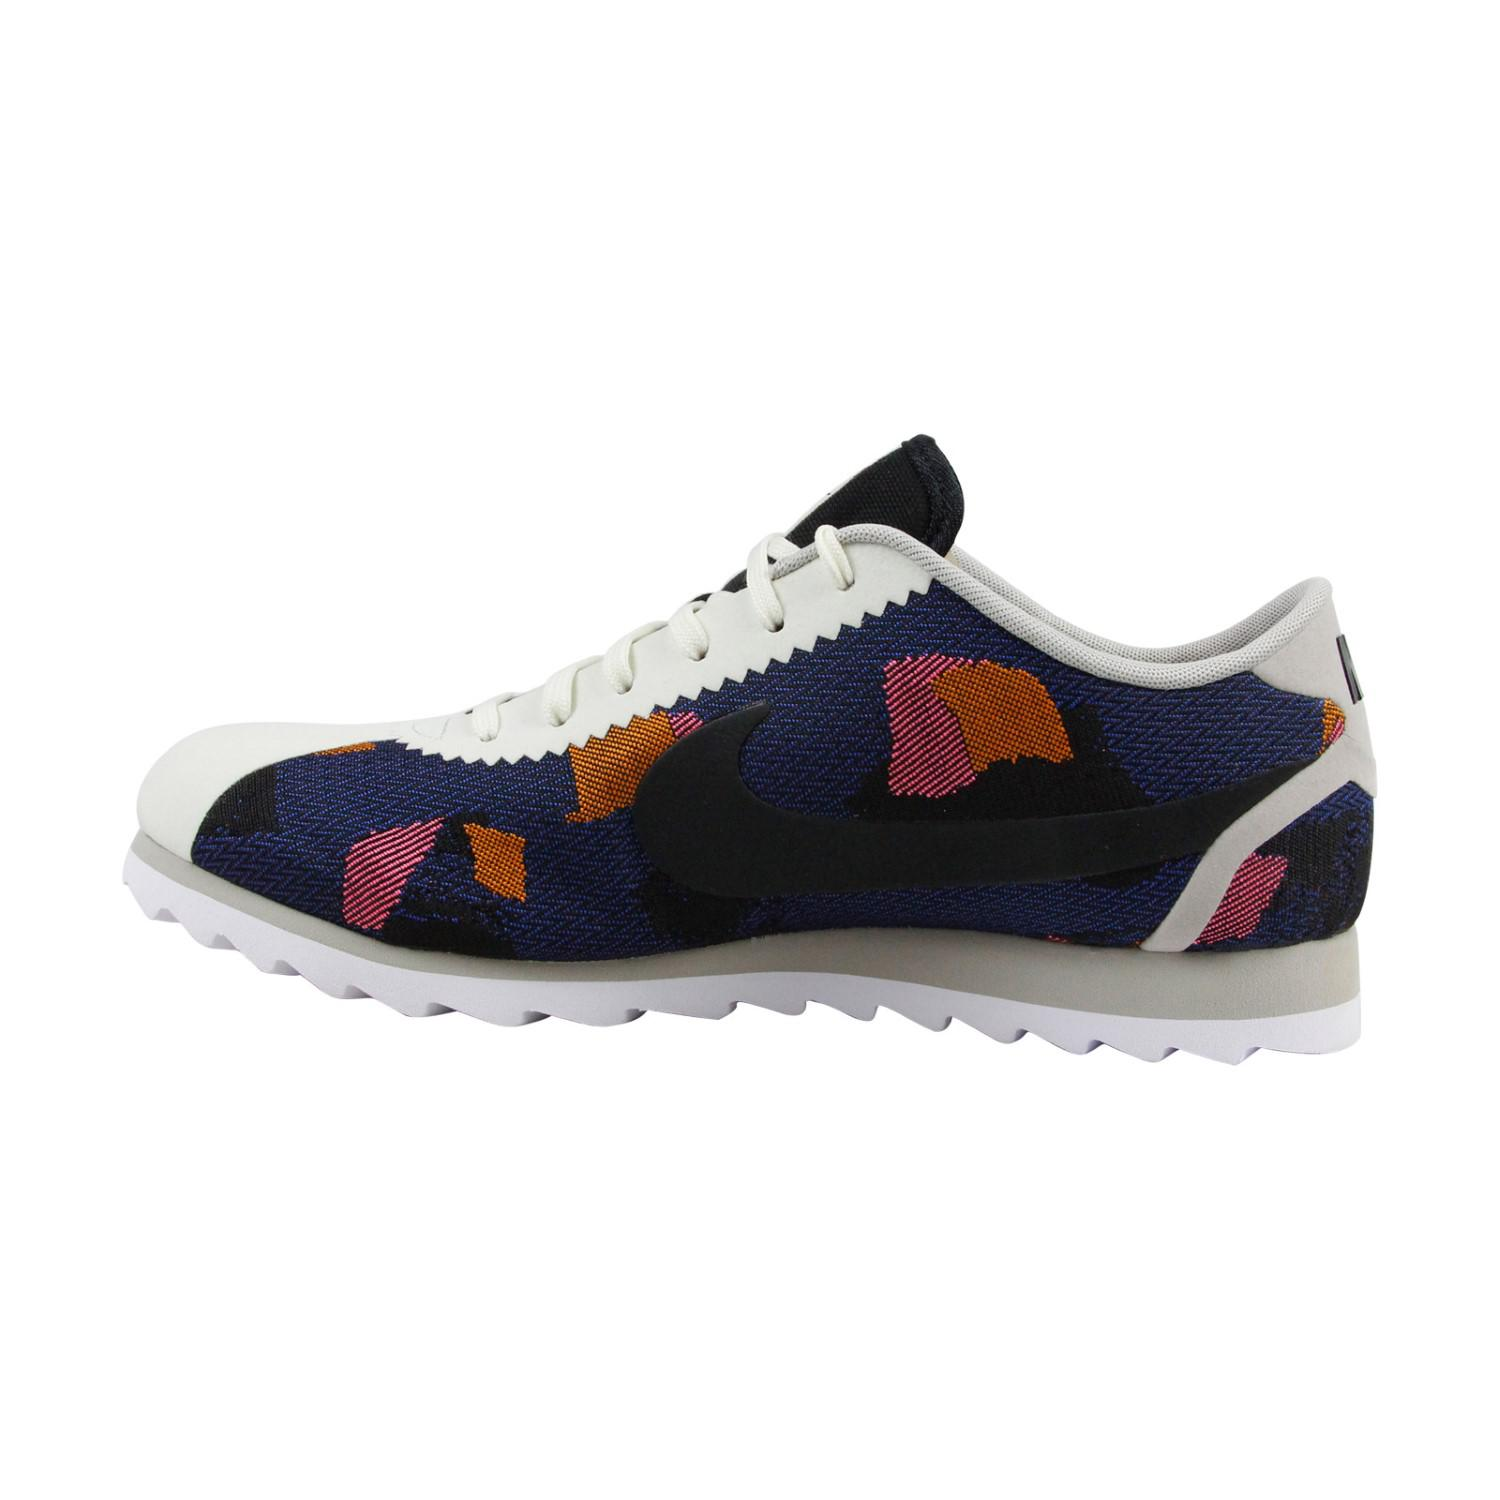 outlet store 5325e de045 Lyst - Nike Cortez Ultra Print Game Royal Black Sl Lt Irn Or